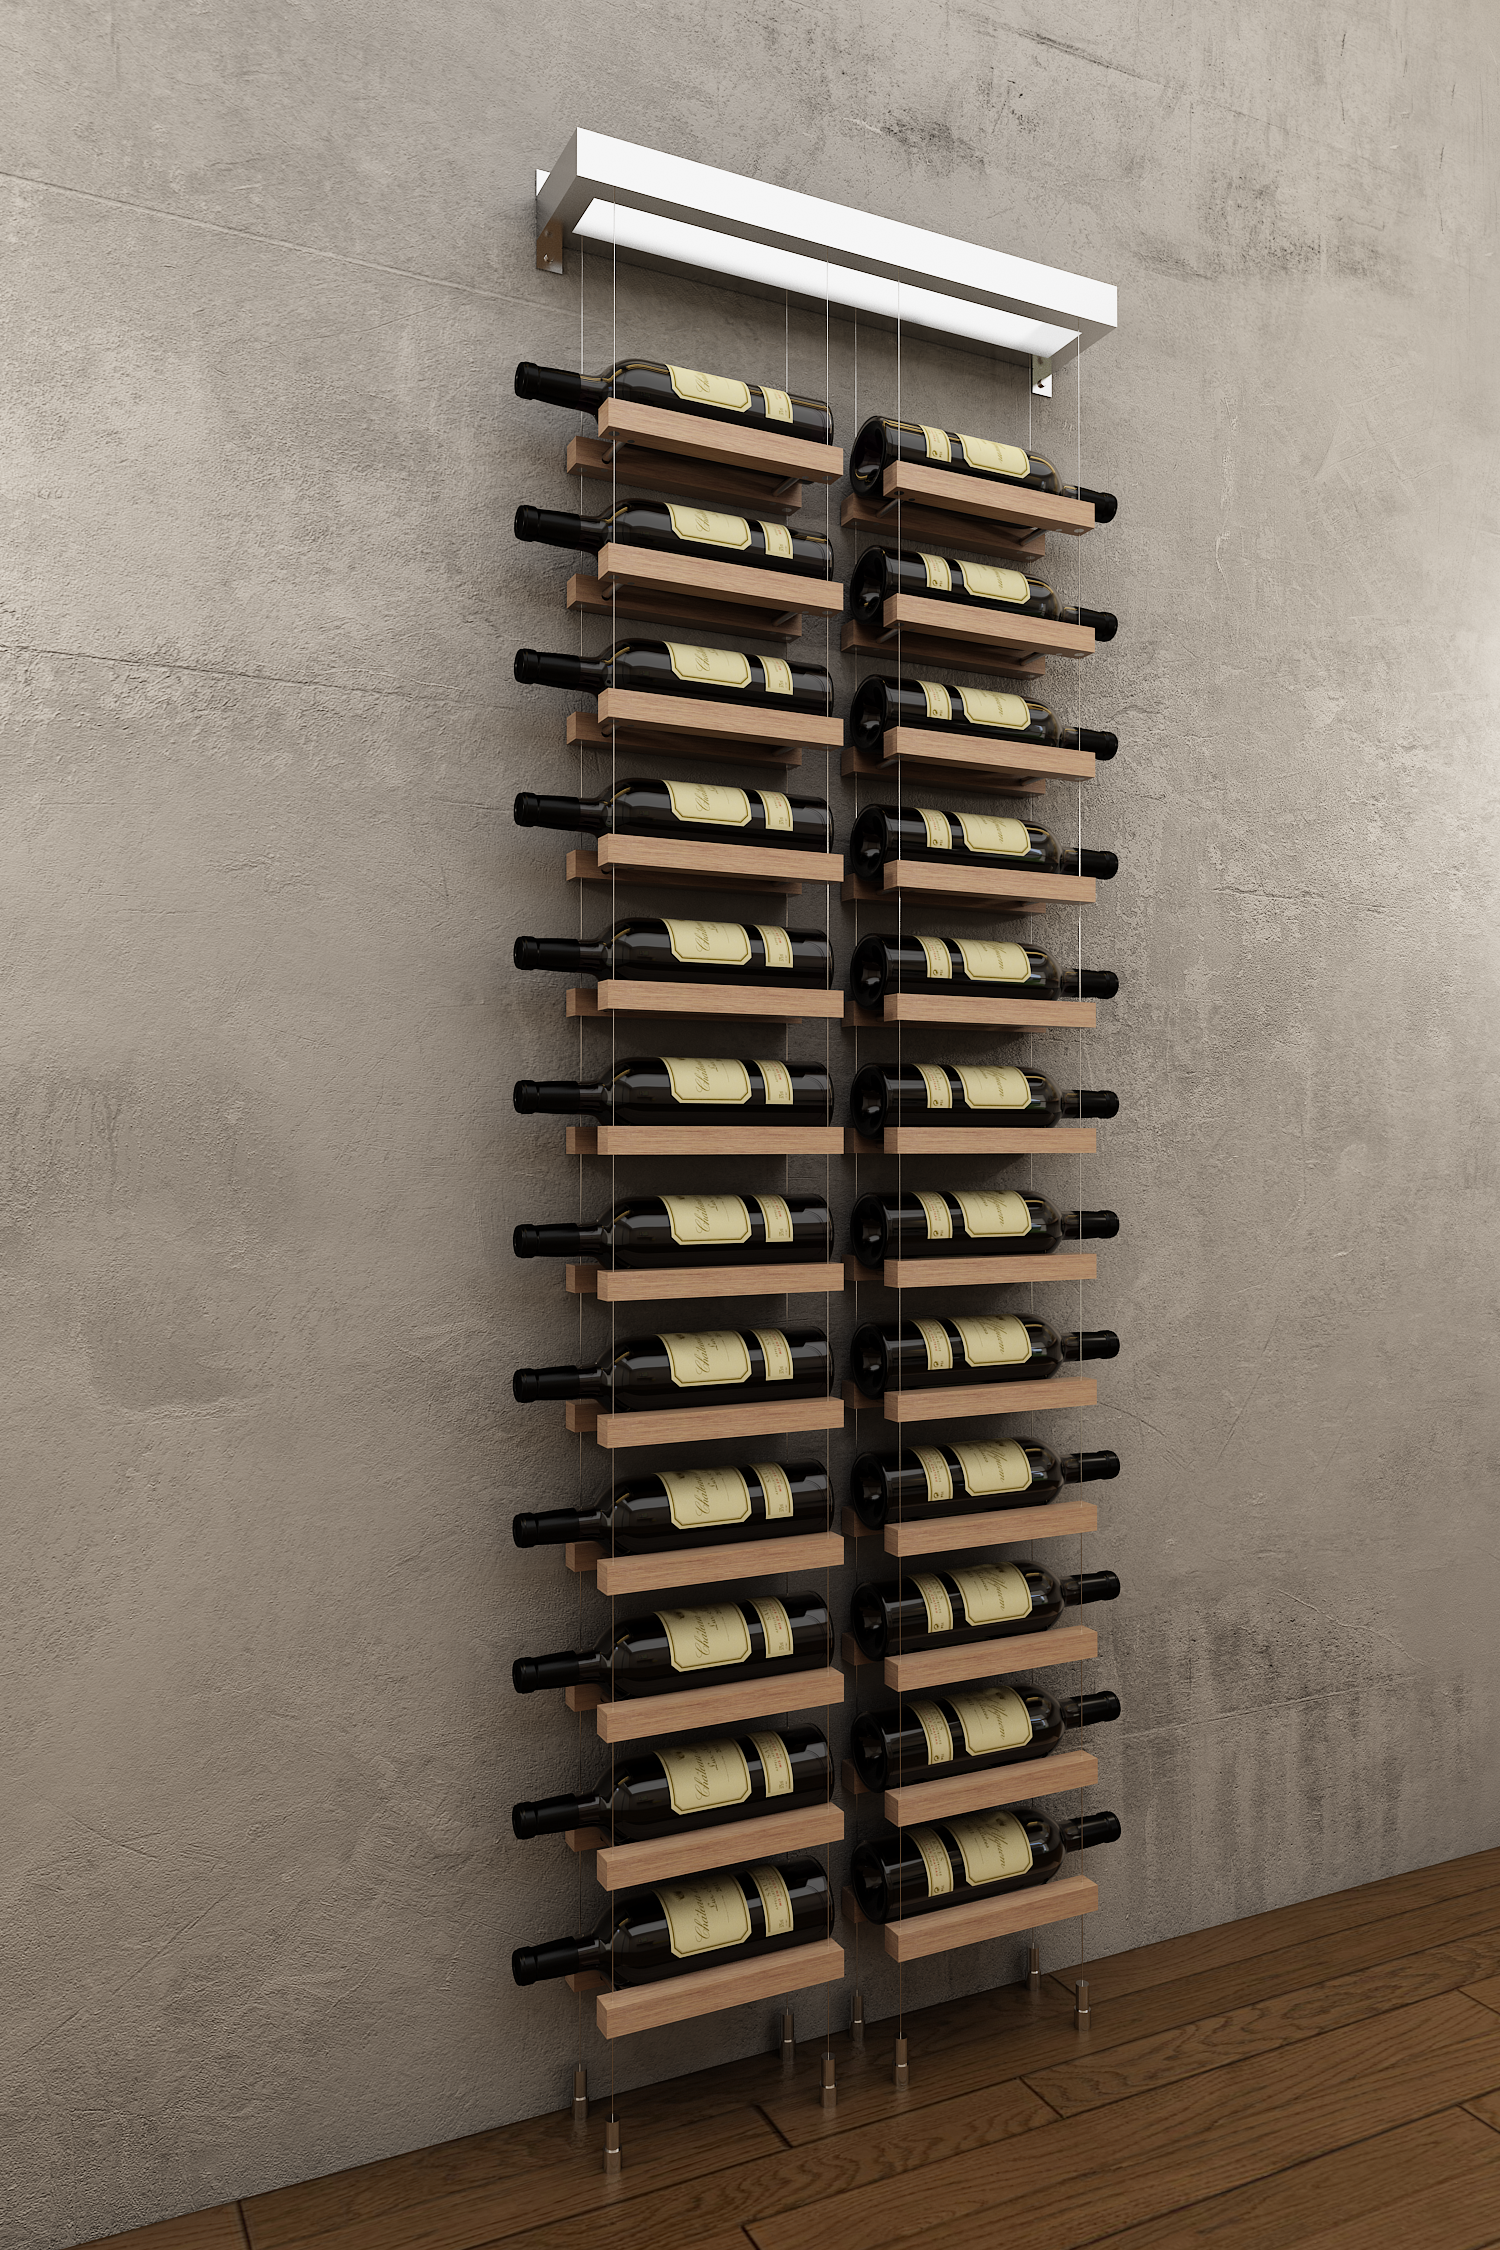 Wm24 Modern Wine Rack Wall Mounted Wine Rack Wall Hanging Wine